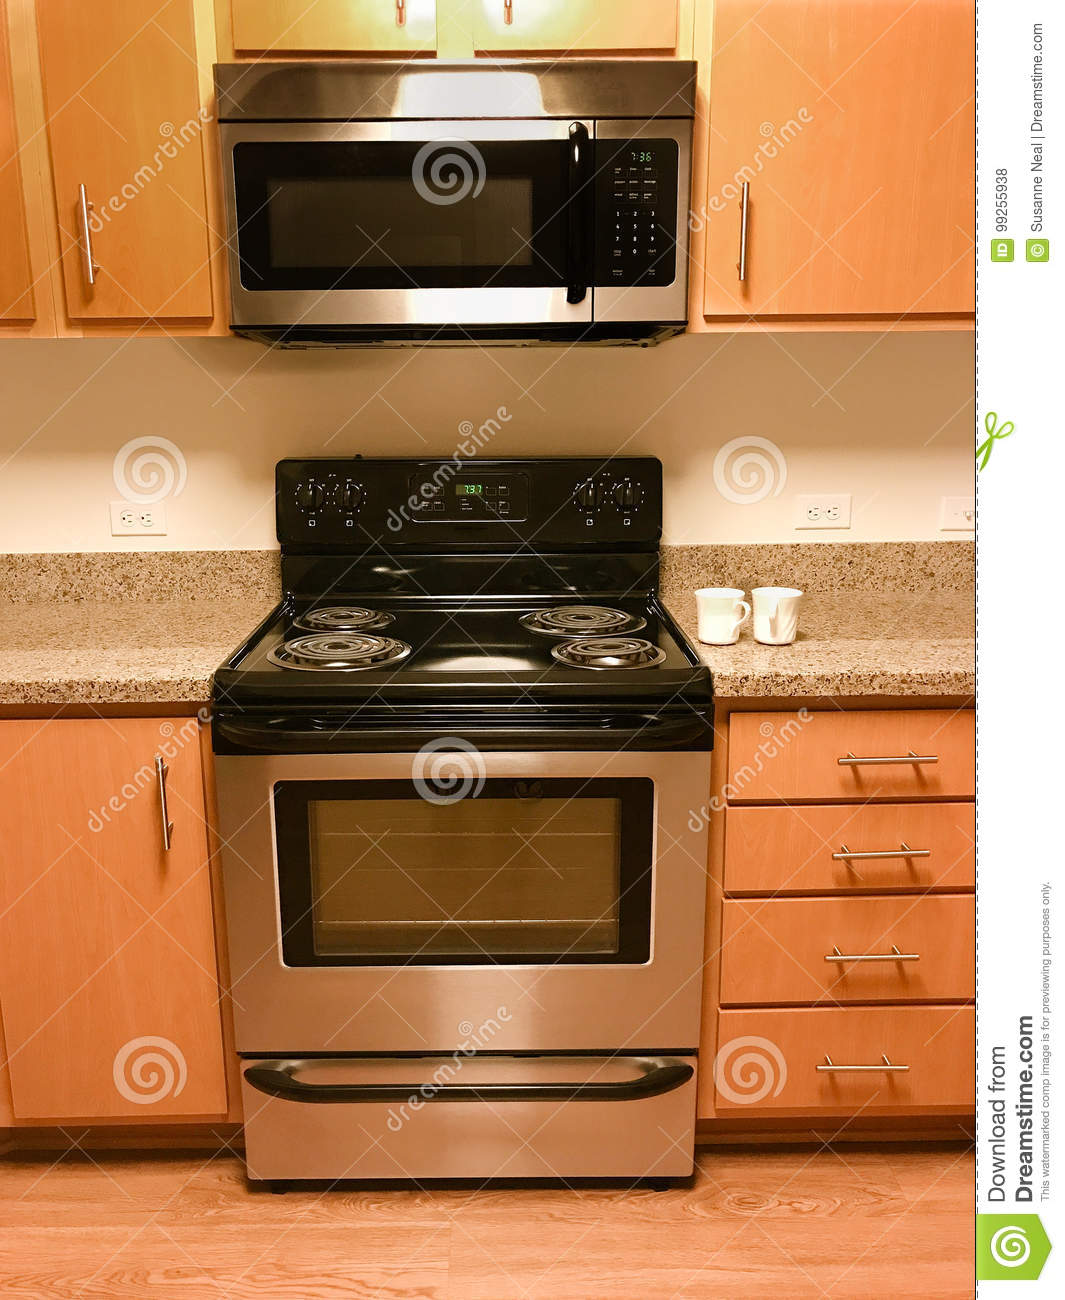 https www dreamstime com stock photo range stove microwave kitchen cabinets clean new electric range burners matching microwave oven overhead image99255938